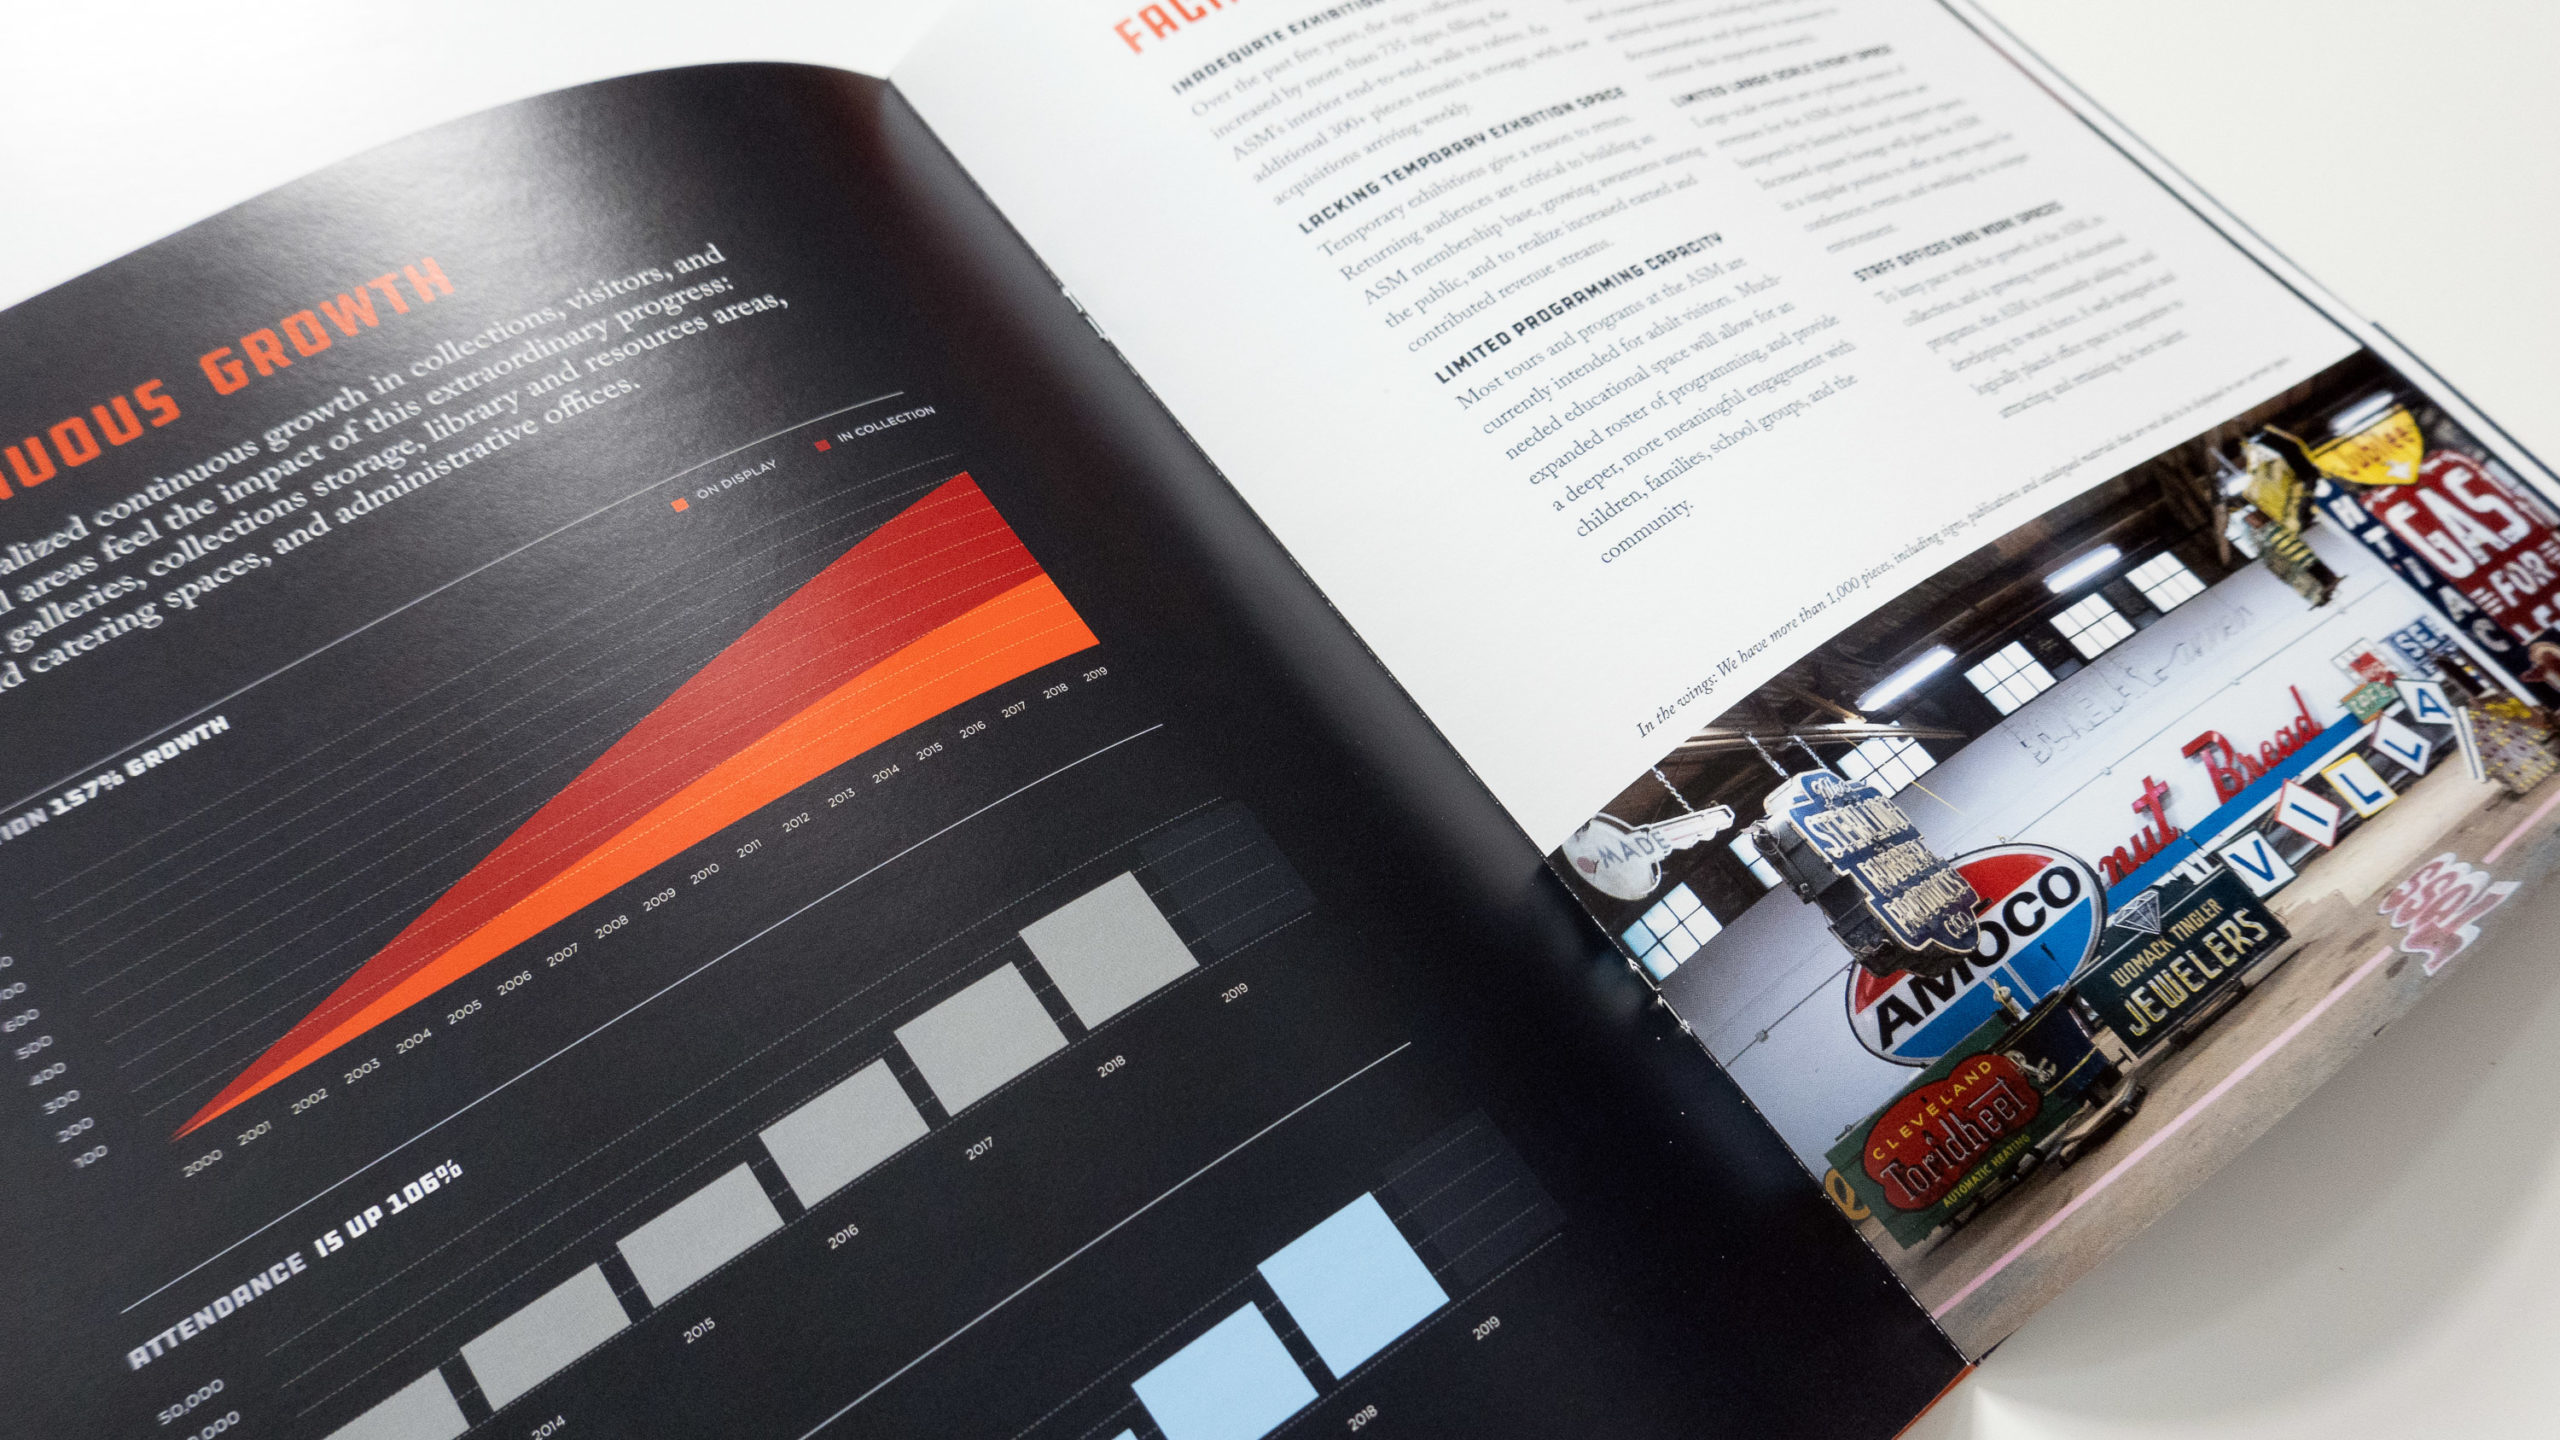 An angled spread with charts, text and a photograph